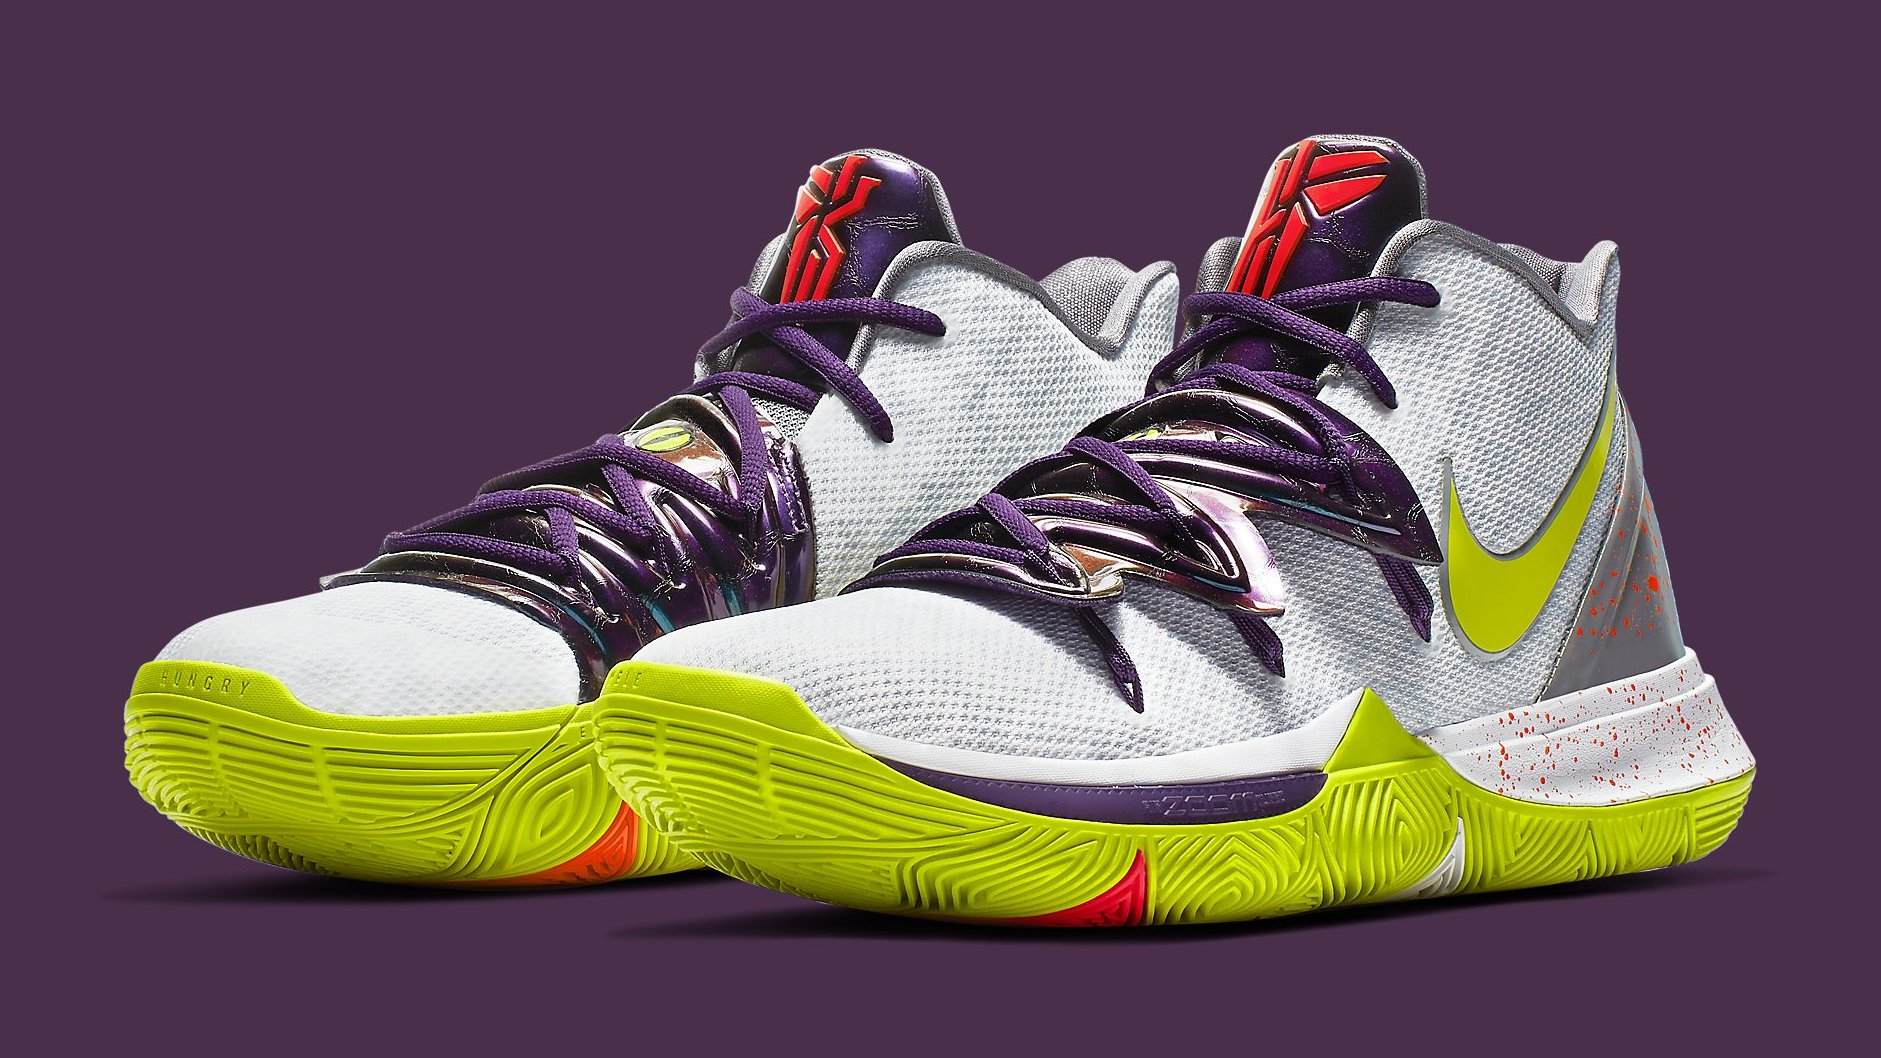 2f9af49c4c7 Official Look at the  Mamba Mentality  Kyrie 5s Dropping for Mamba Day 2019